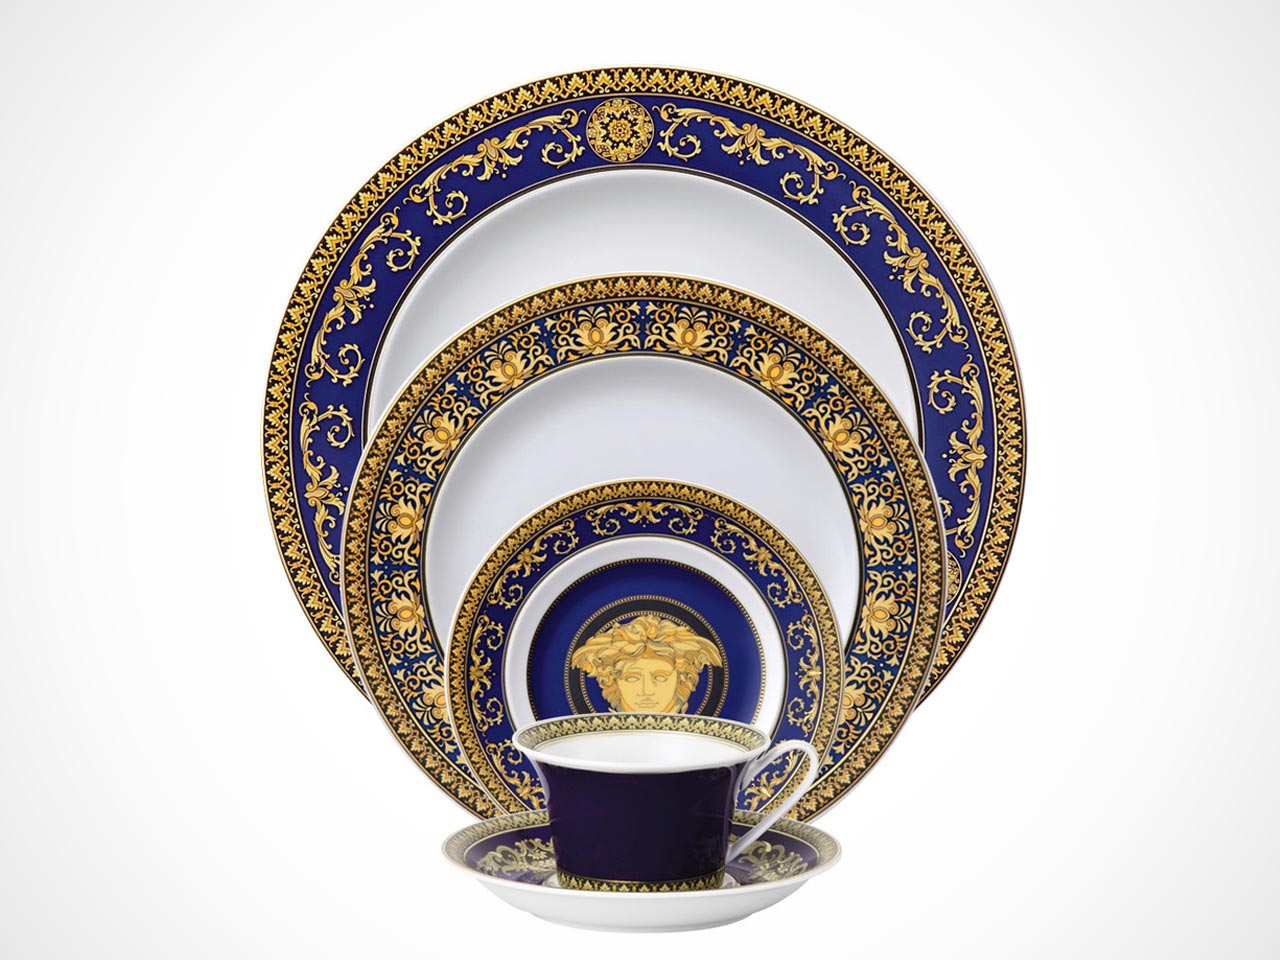 Versace Medusa Blue 5 piece place setting on white background.